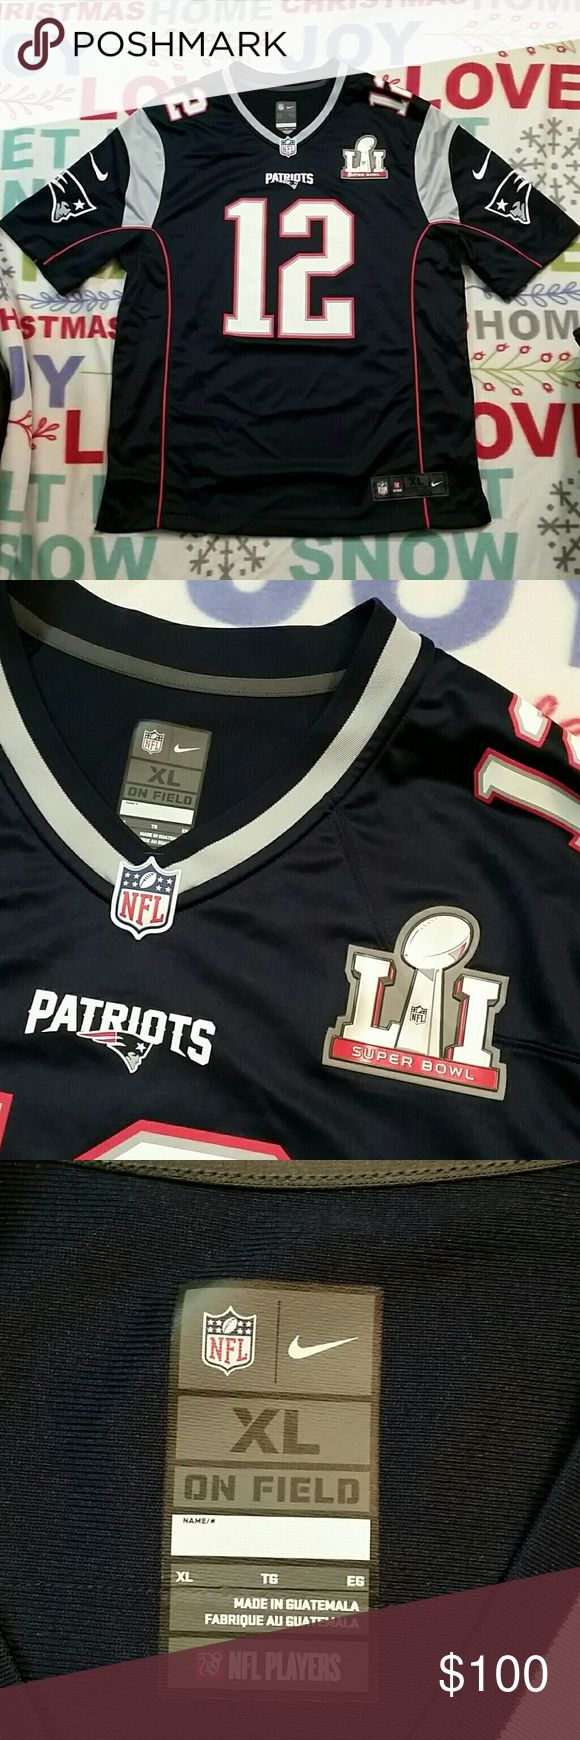 Men's Patriots Brady Nike Super Bowl L1 NFL Jersey In Real good condition. Men's New England Patriots Tom Brady Nike Navy Super Bowl LI Bound Game Jersey.Retail for $160 and up. Nike Shirts